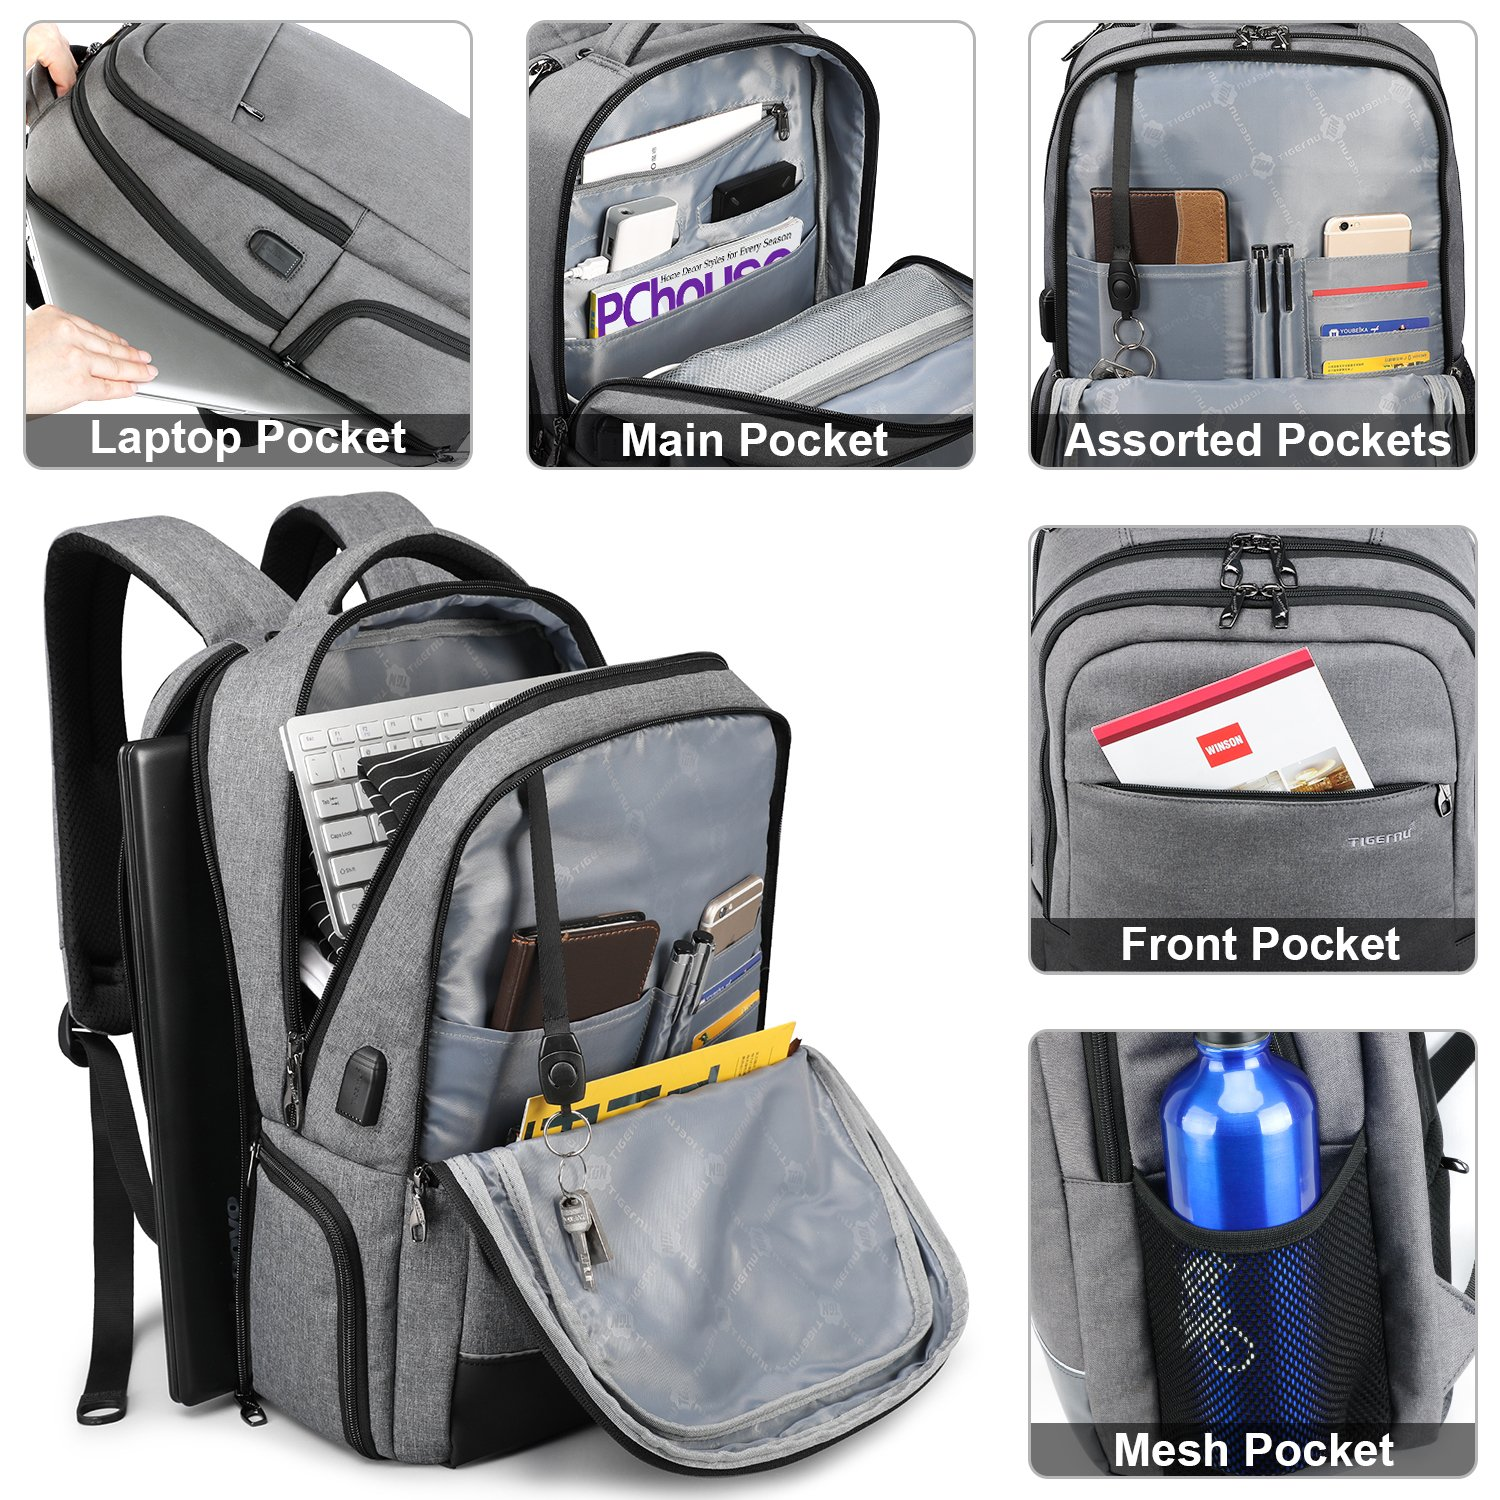 KUPRINE Business Laptop Backpack for Women Mens Water Resistant College School Laptop Slim Backpack Travel Bag Fits 15 15.6 inch Notebook Computers with USB Charging Port- Grey